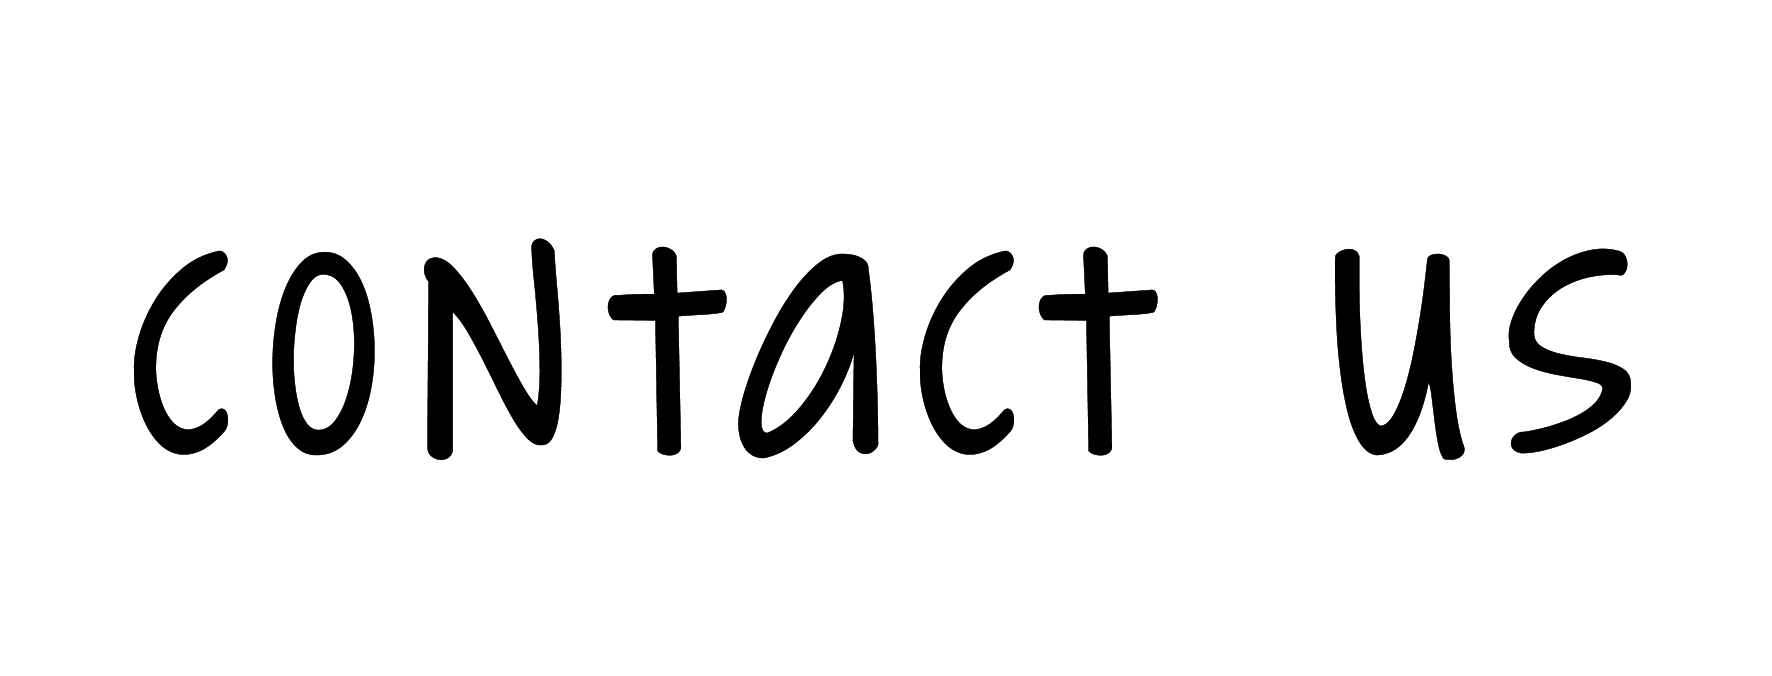 Contact us-01.png